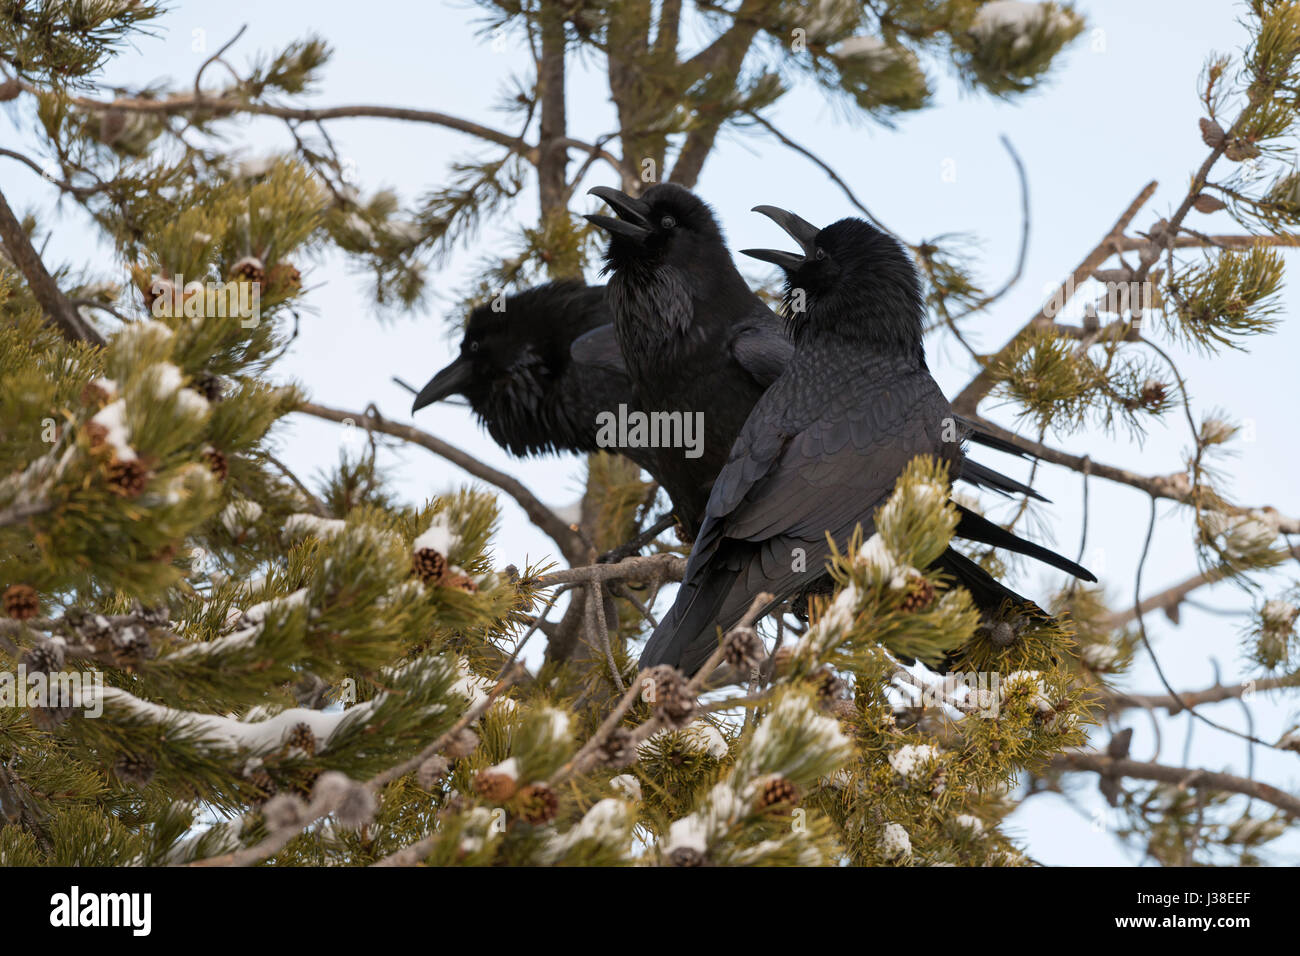 Common Raven / Kolkraben ( Corvus corax ) in winter, perched in a conifer tree, calling loudly, showing courting - Stock Image